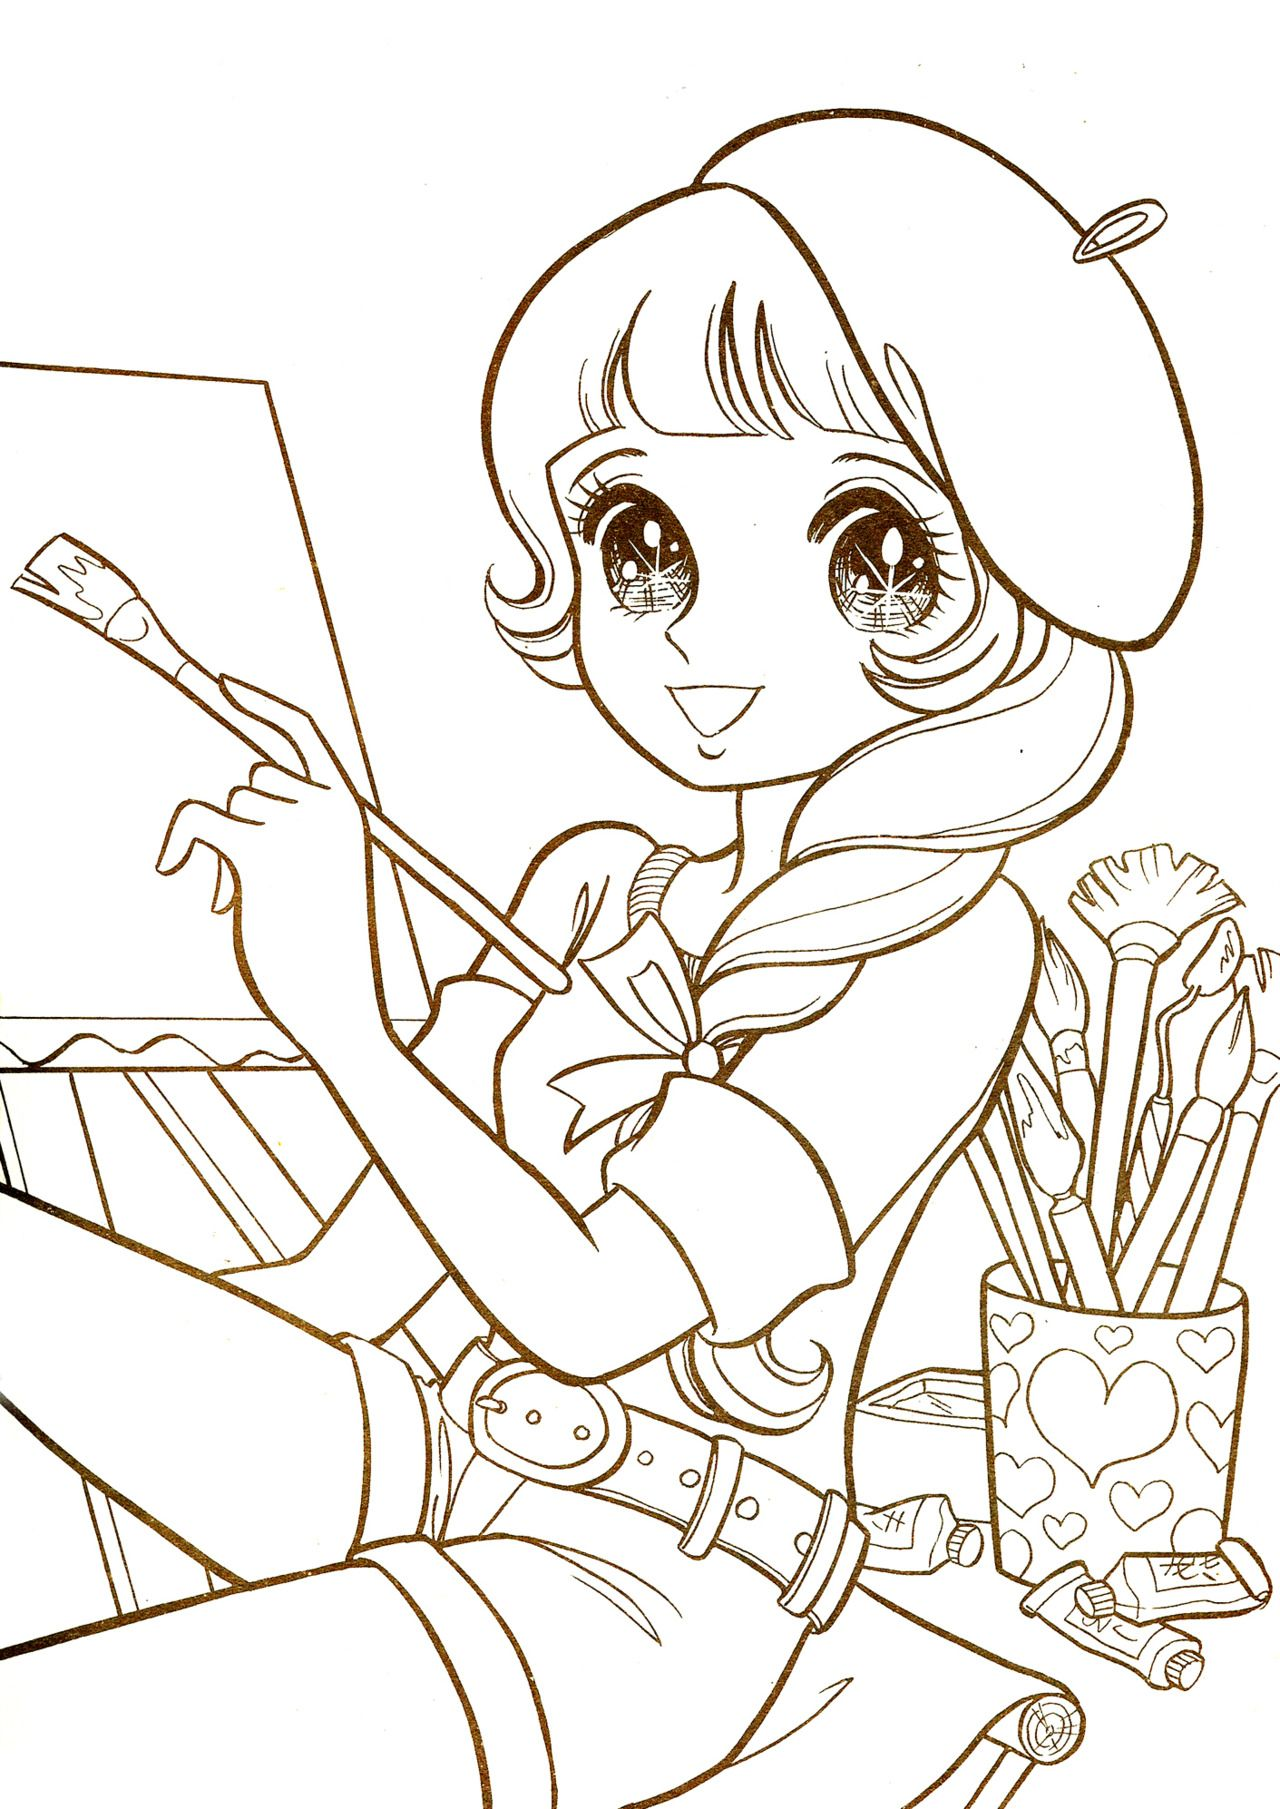 Aeromachia Shojo Manga No Memory This Is Few Coloring Pages From This Vintage Coloring Book Vintage Coloring Books Manga Coloring Book Cute Coloring Pages